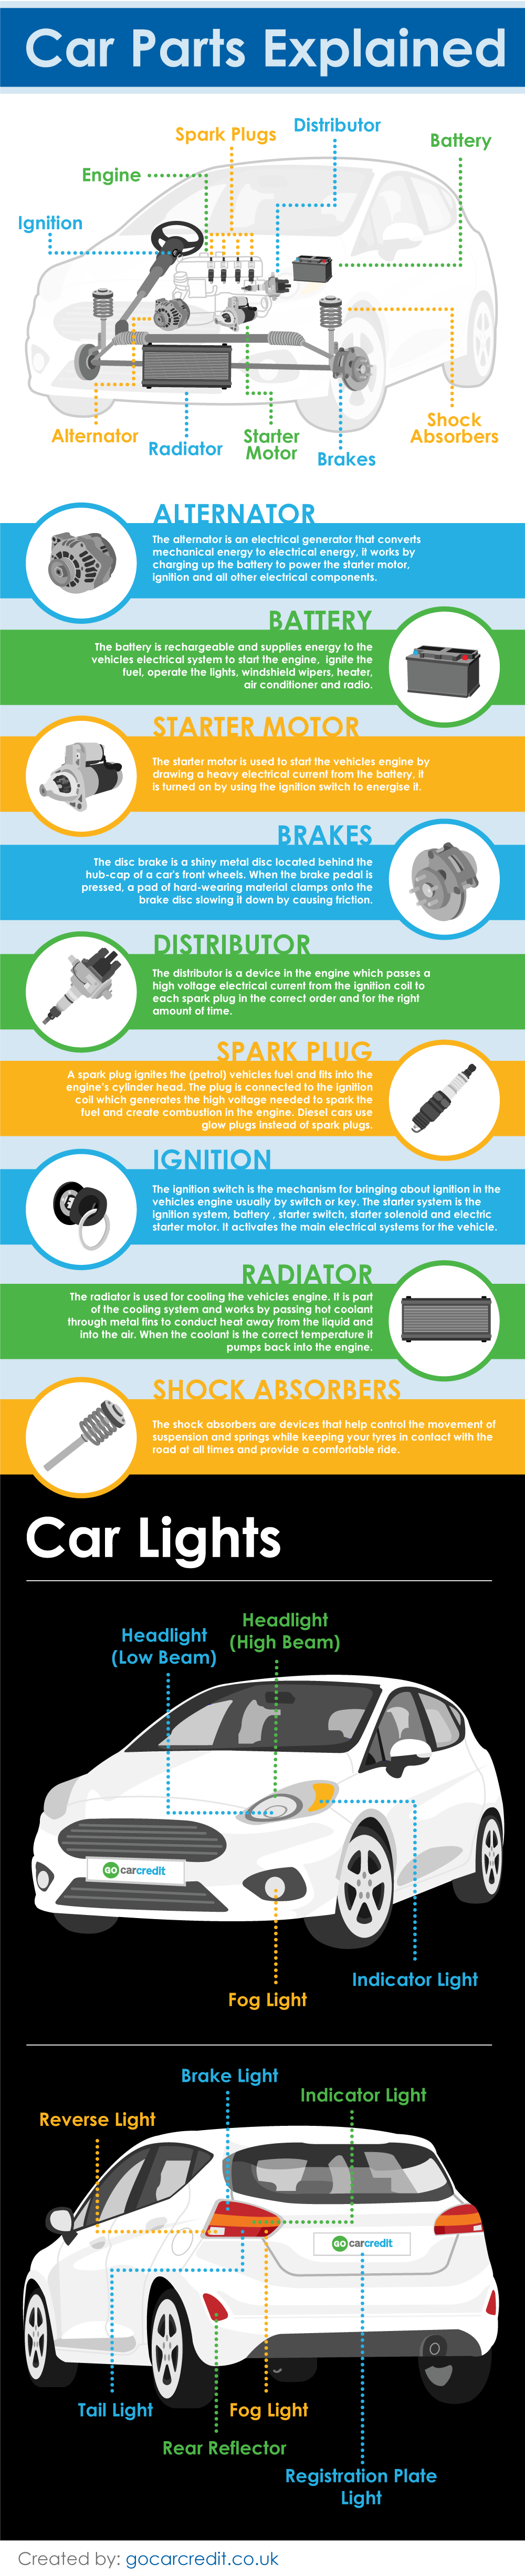 car-parts-explained-infographic